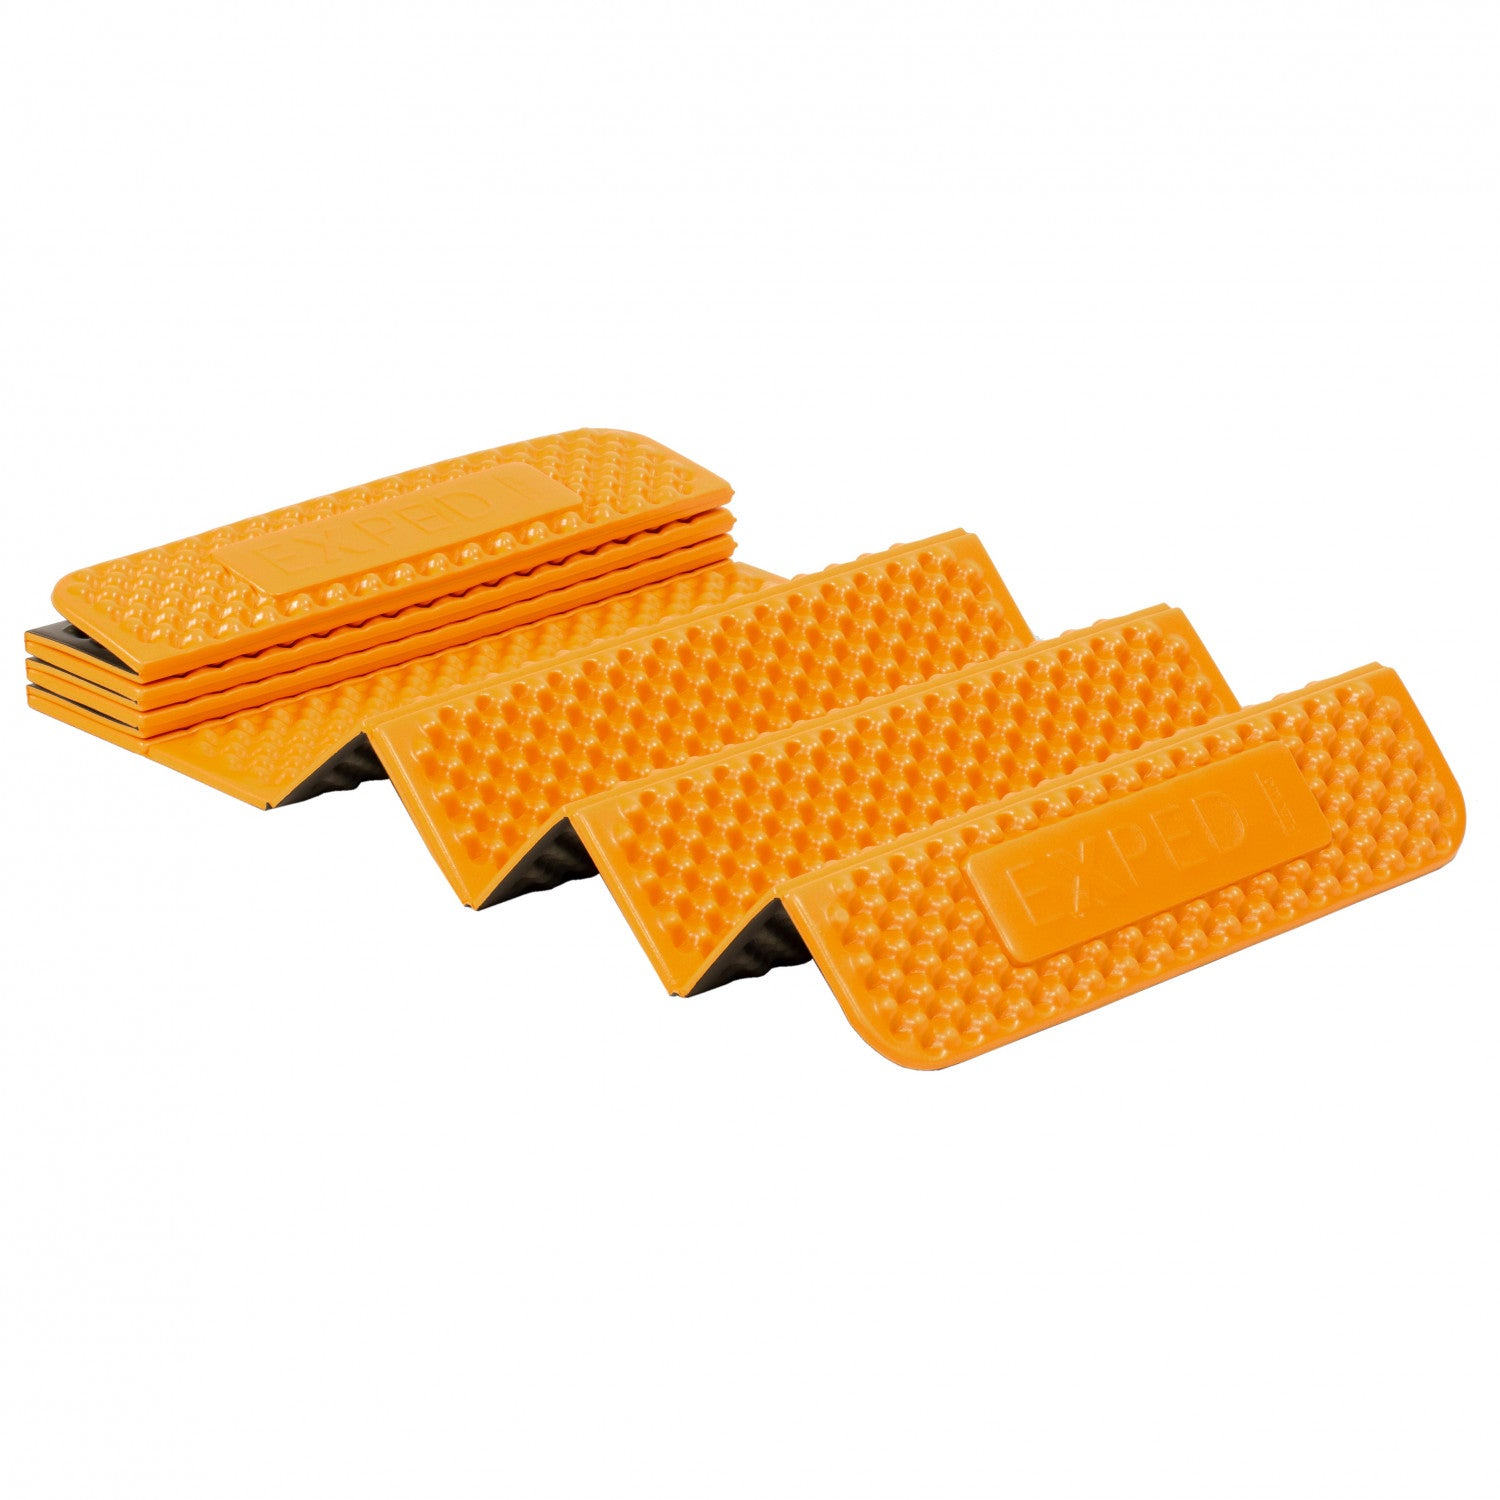 Exped FlexMat folding sleeping mat in orange colour